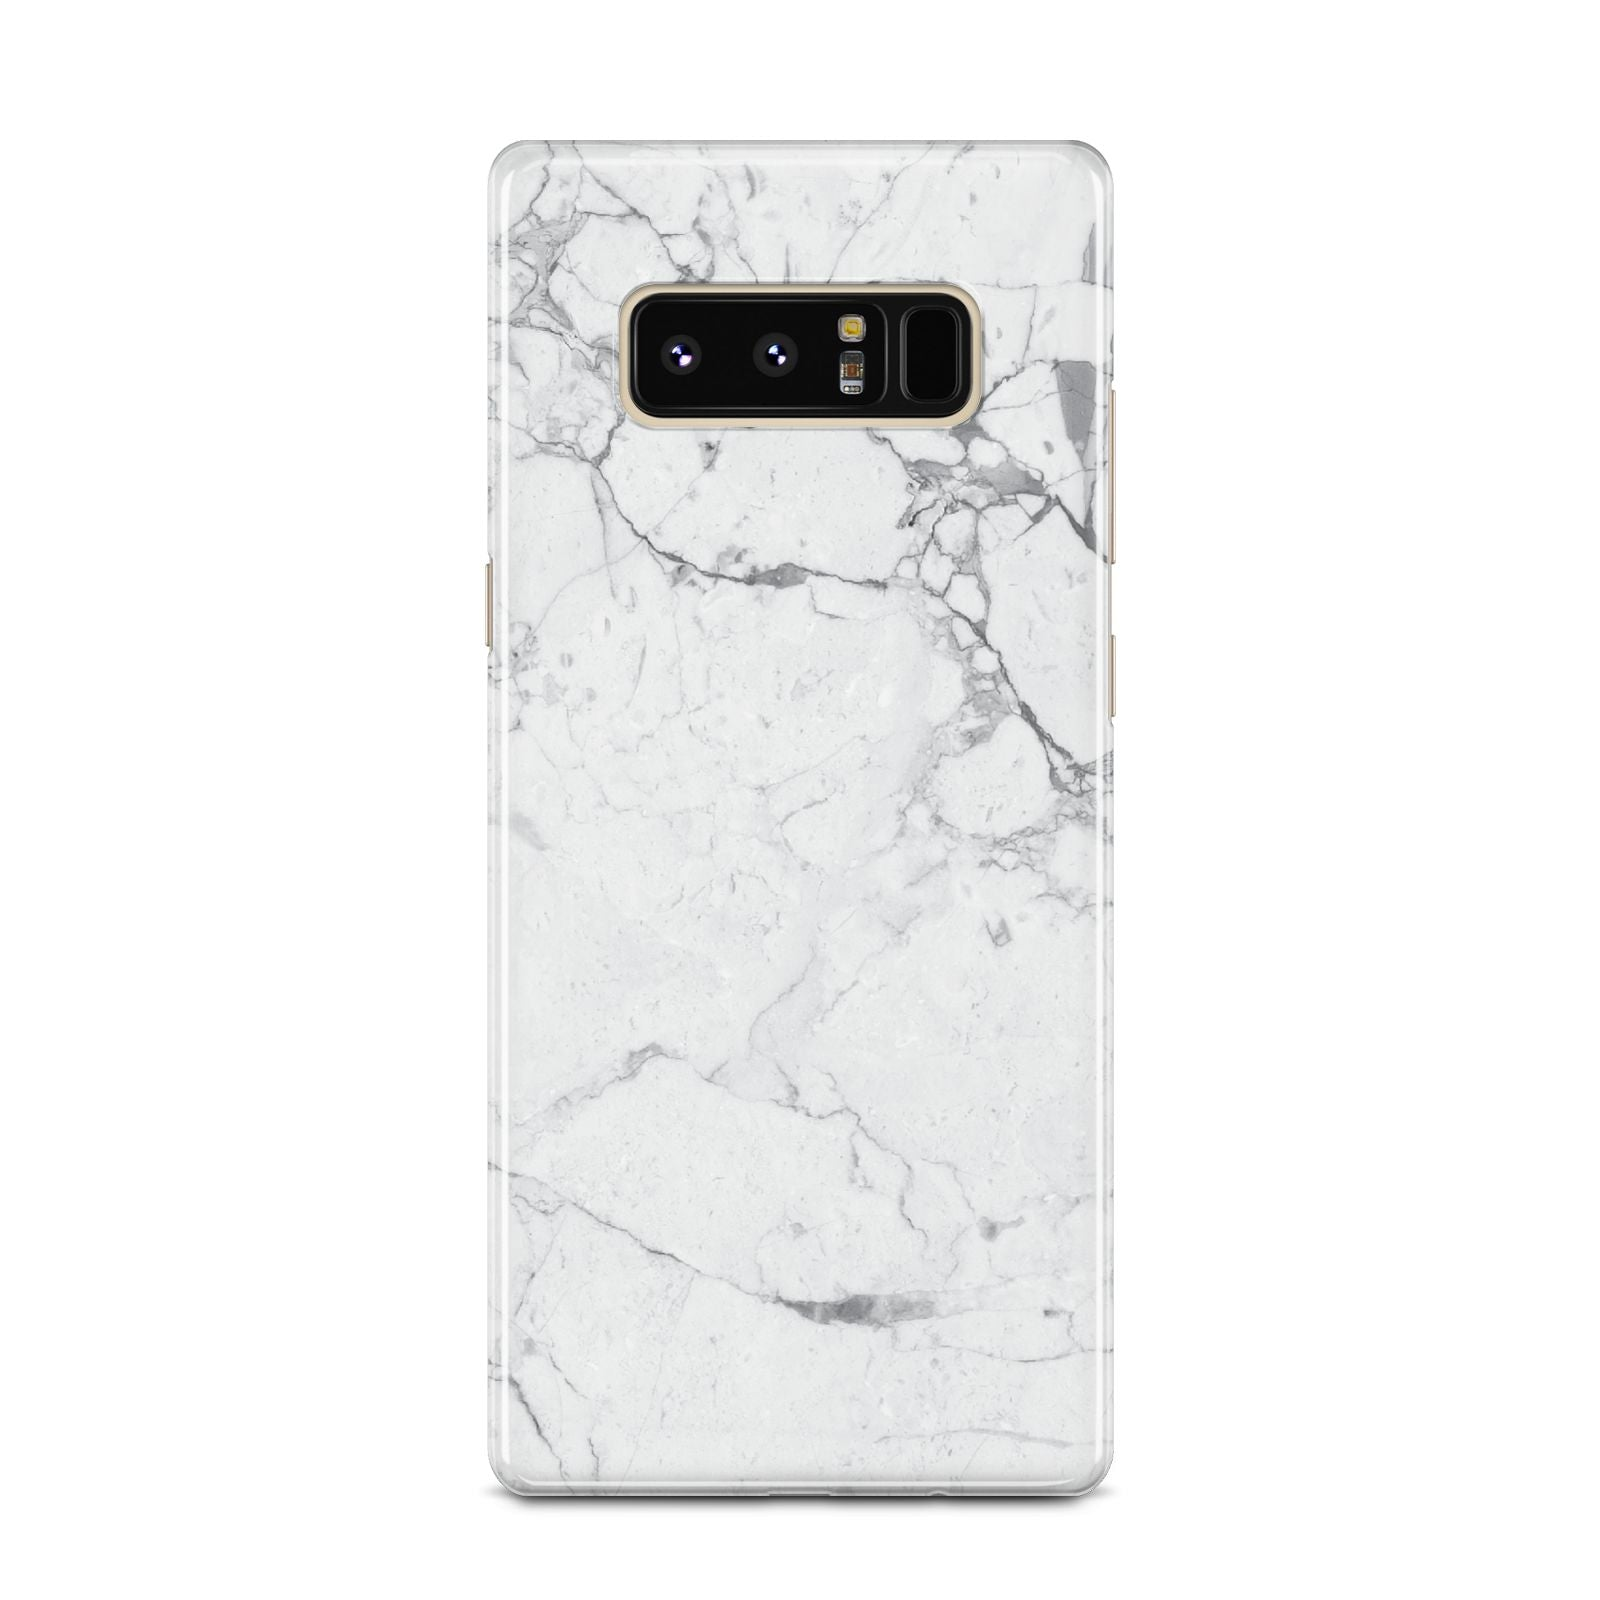 Faux Marble Effect Grey White Samsung Galaxy Note 8 Case